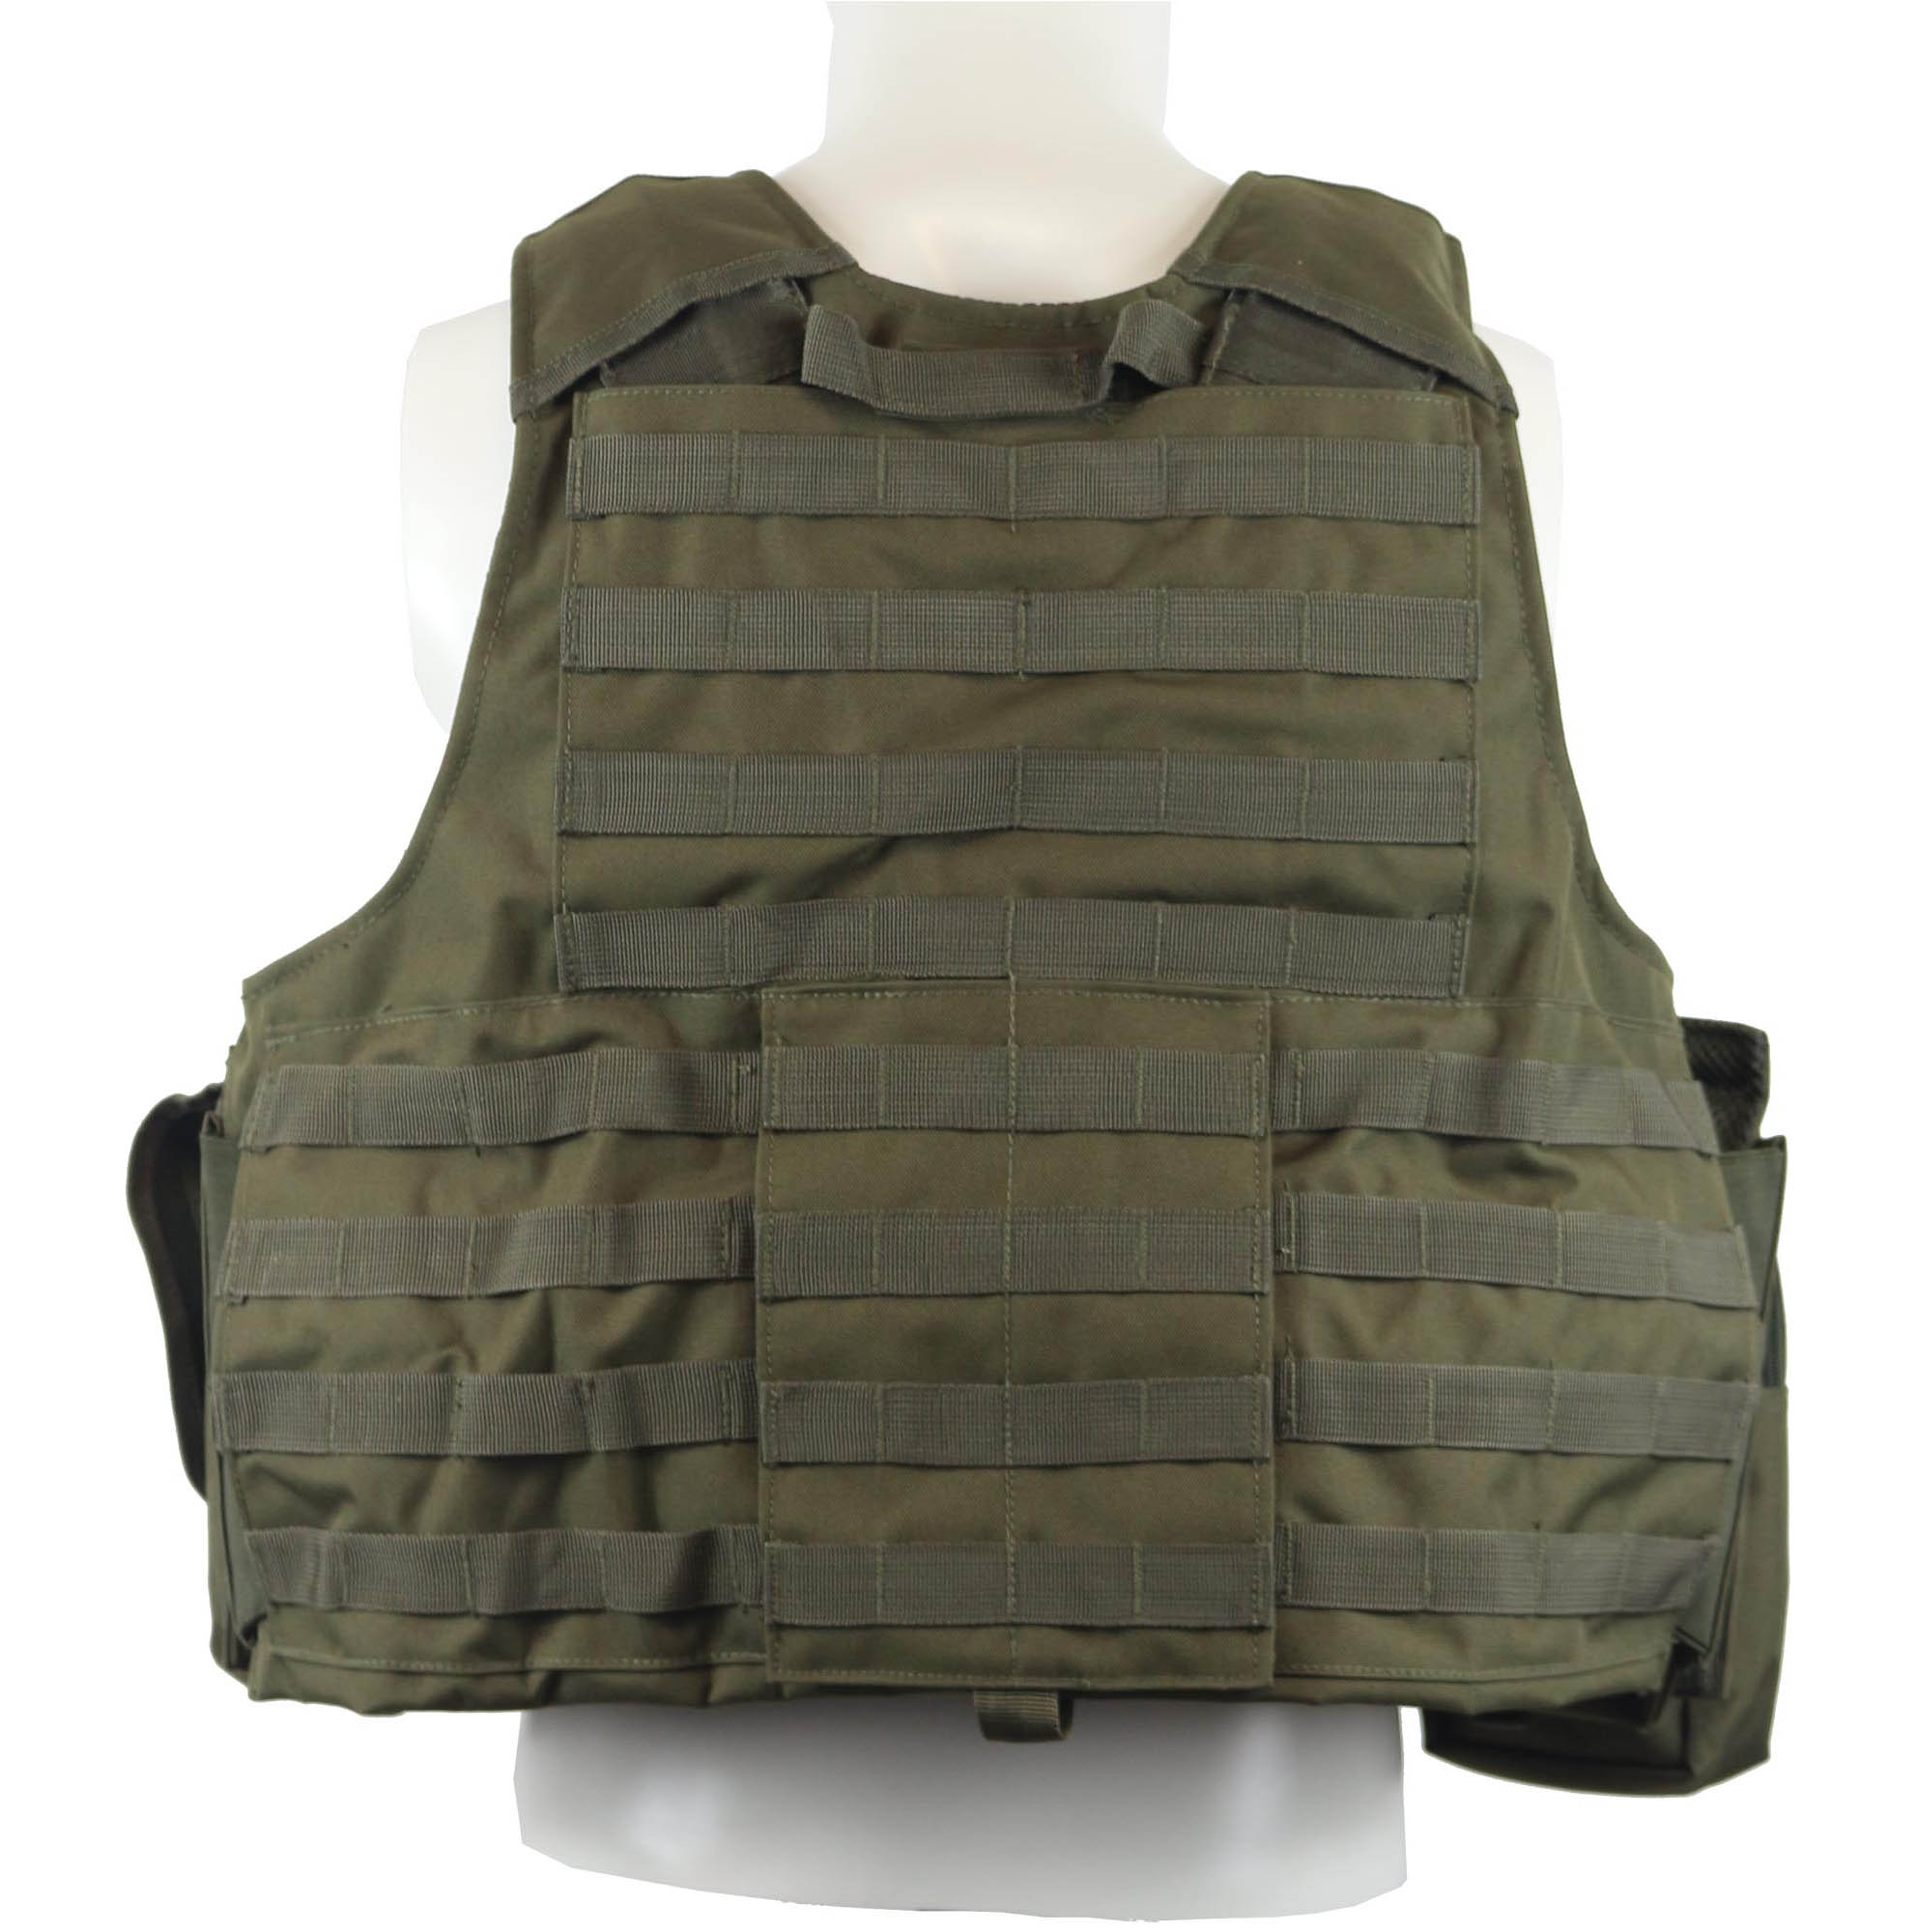 Military Ballistic Vest In High Quality